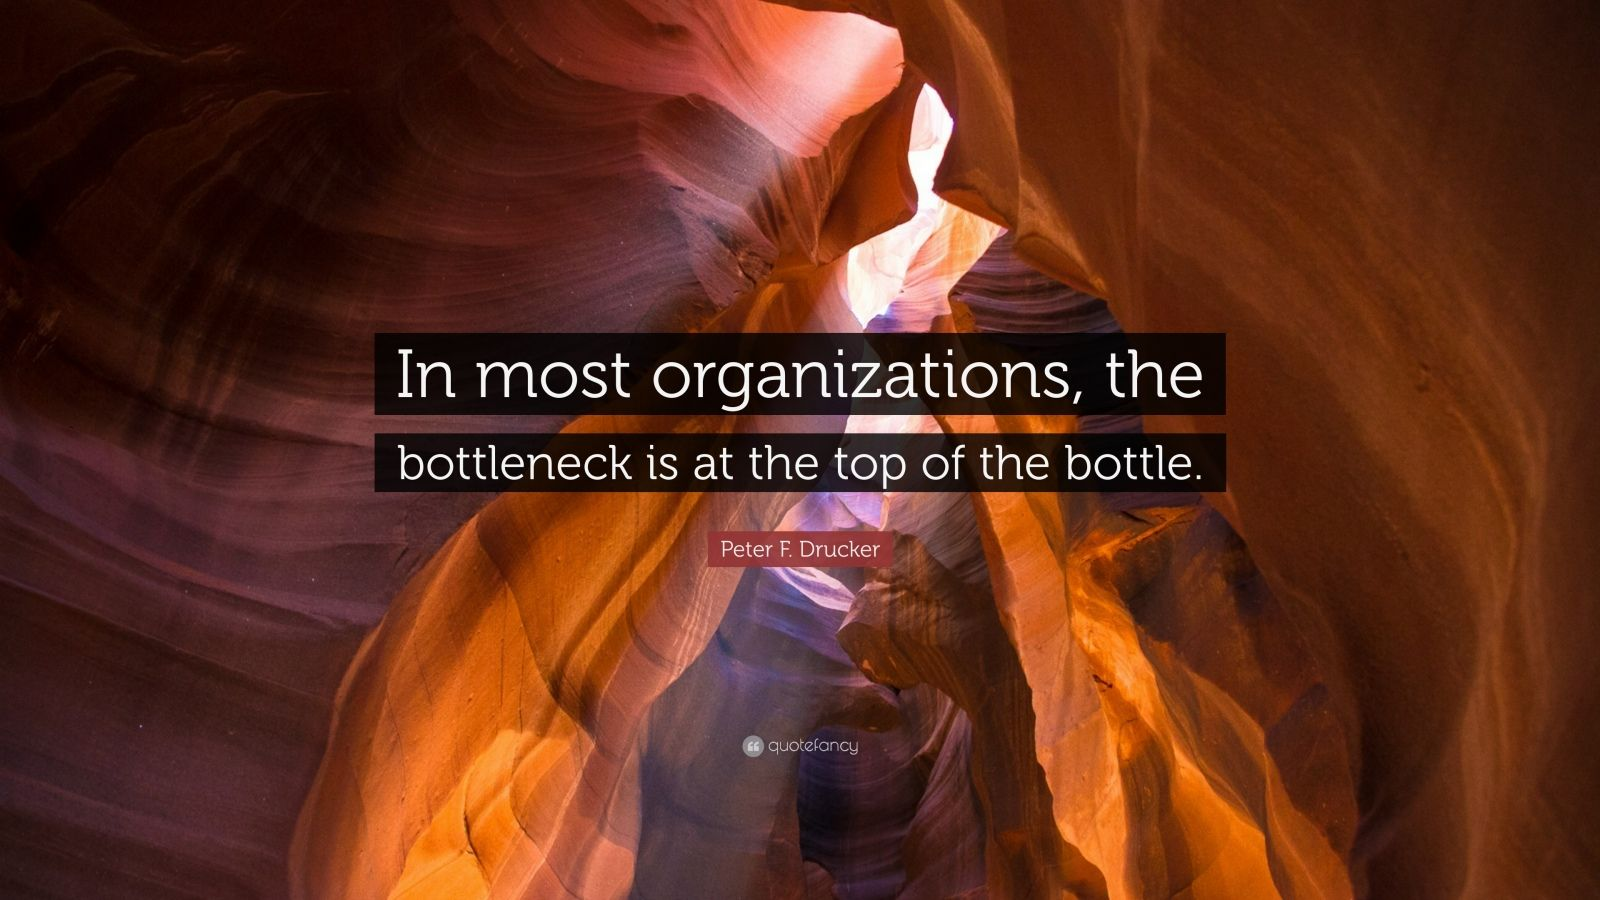 """Peter F. Drucker Quote: """"In most organizations, the bottleneck is at the top of the bottle."""""""